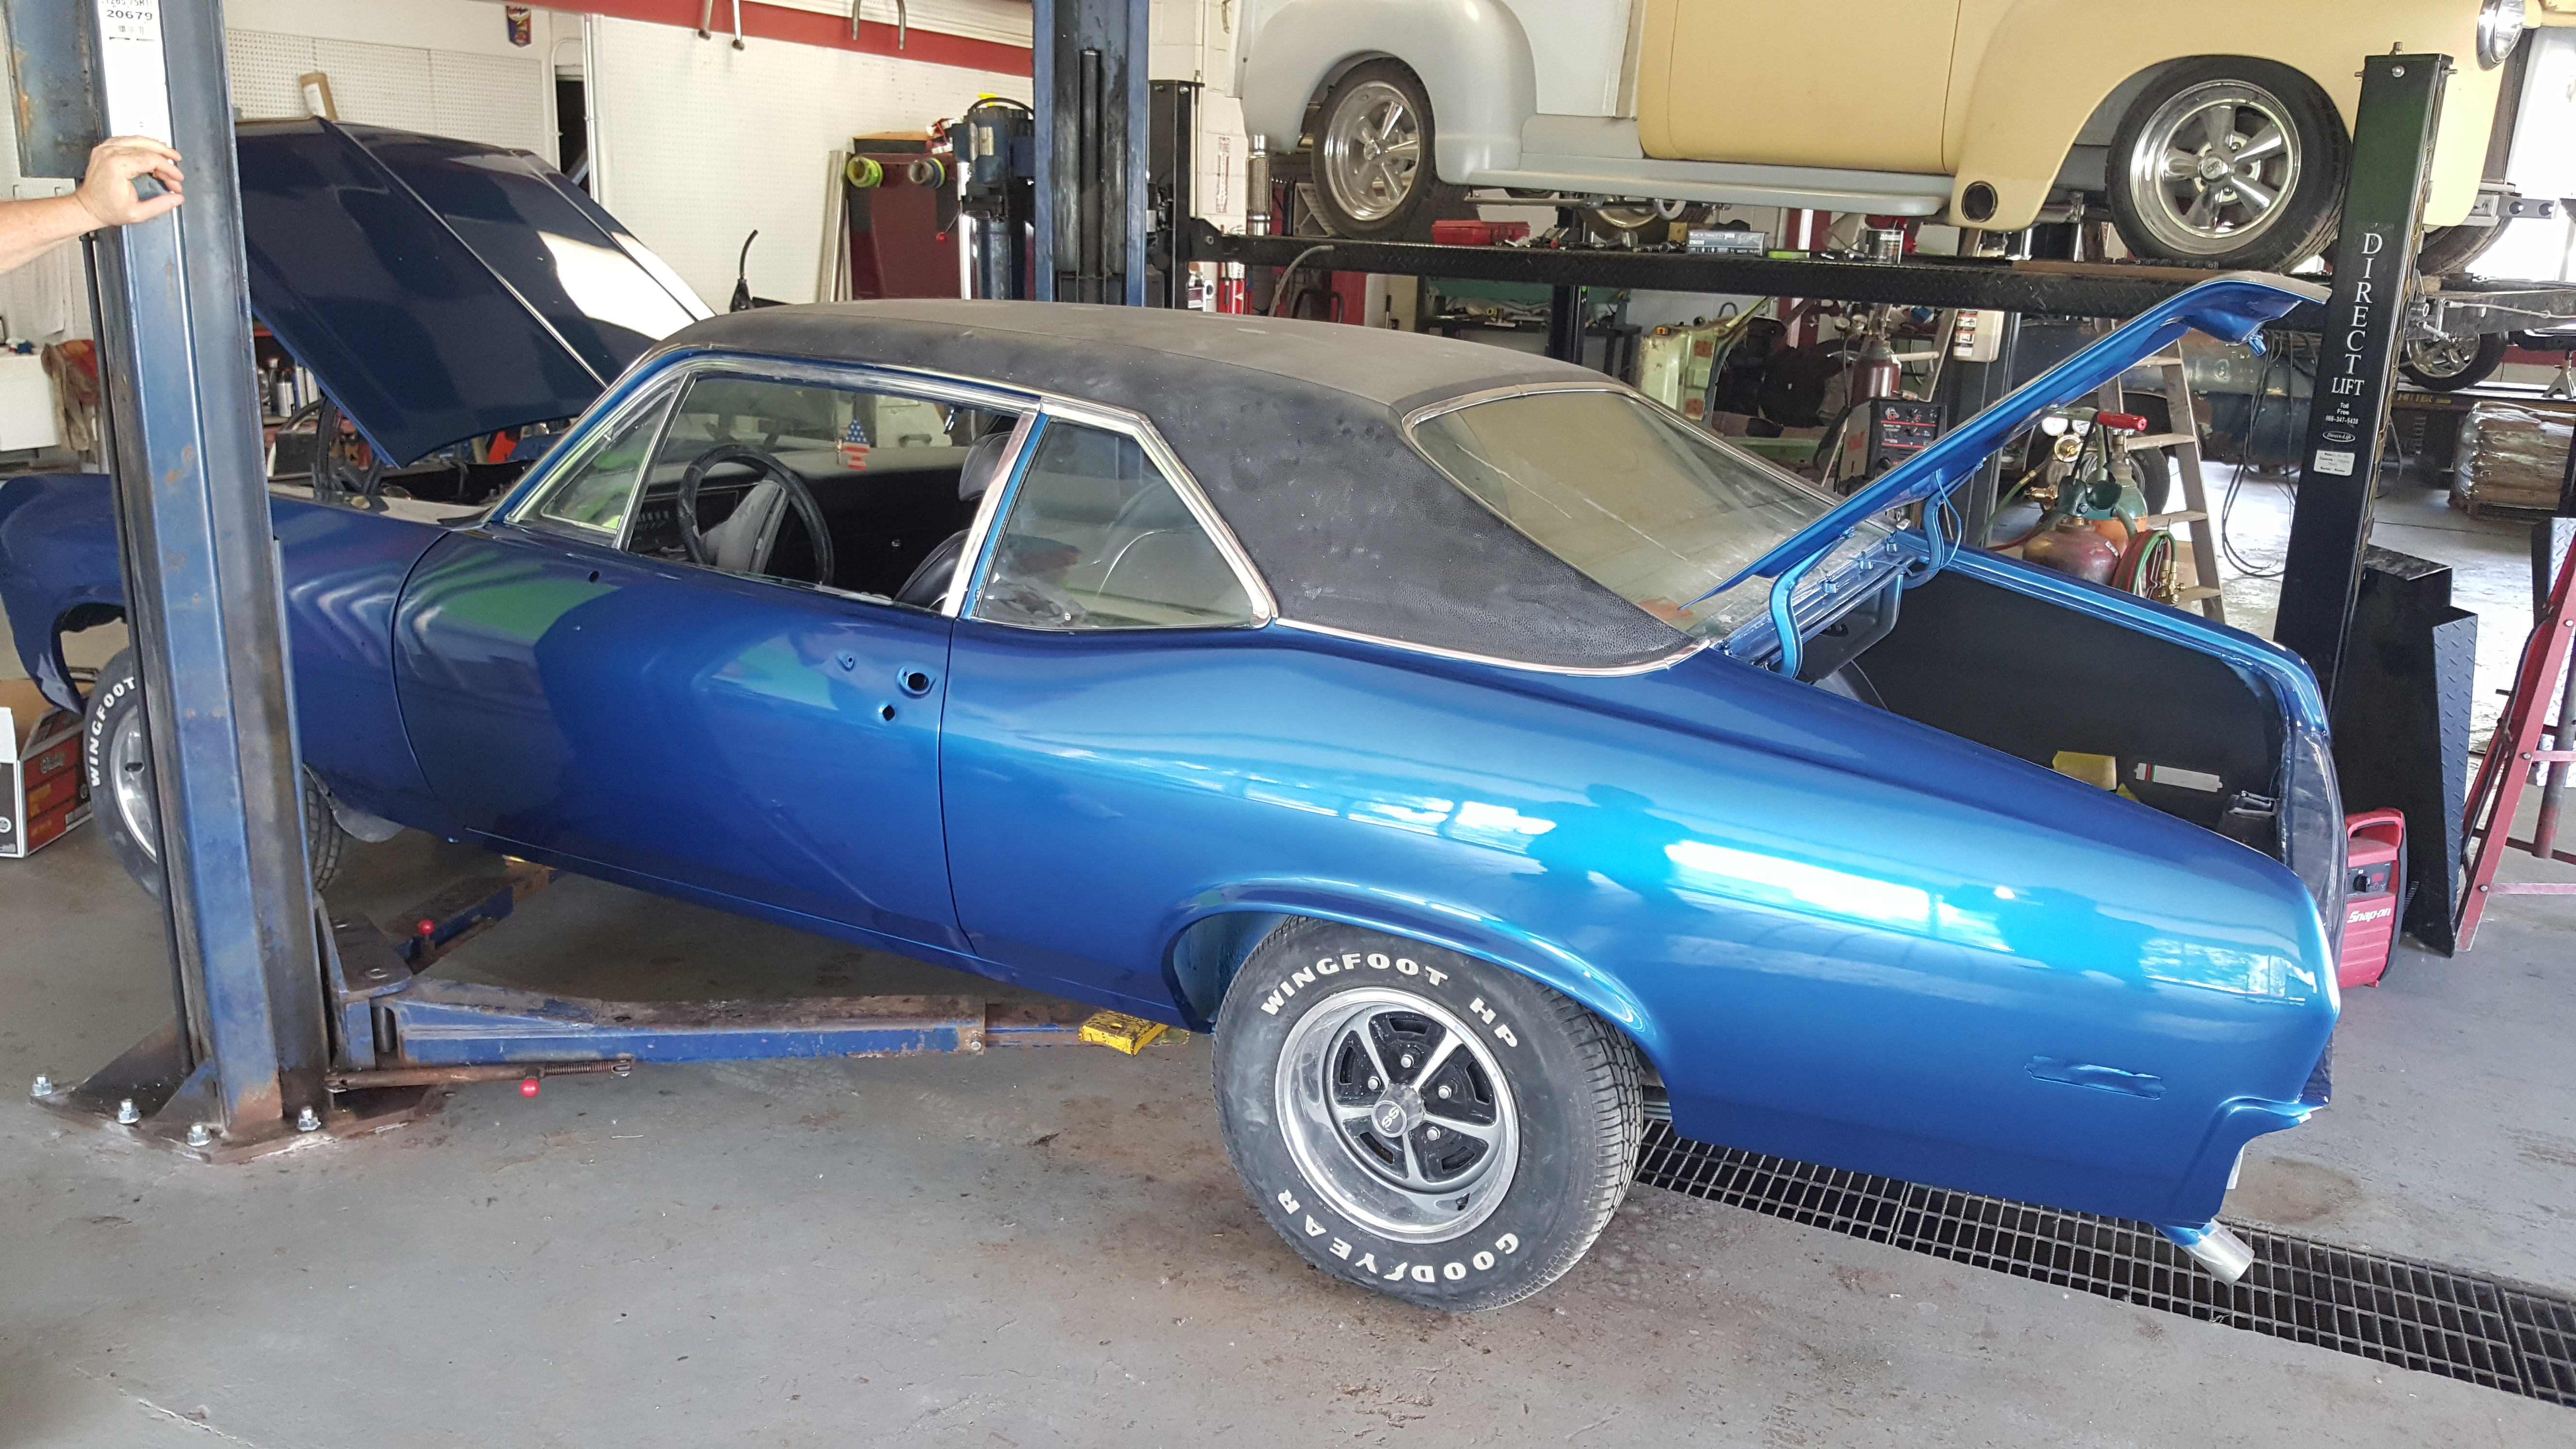 Metal Polishing Near Me >> Grumpy's Hot Rod Shop Coupons near me in Janesville | 8coupons